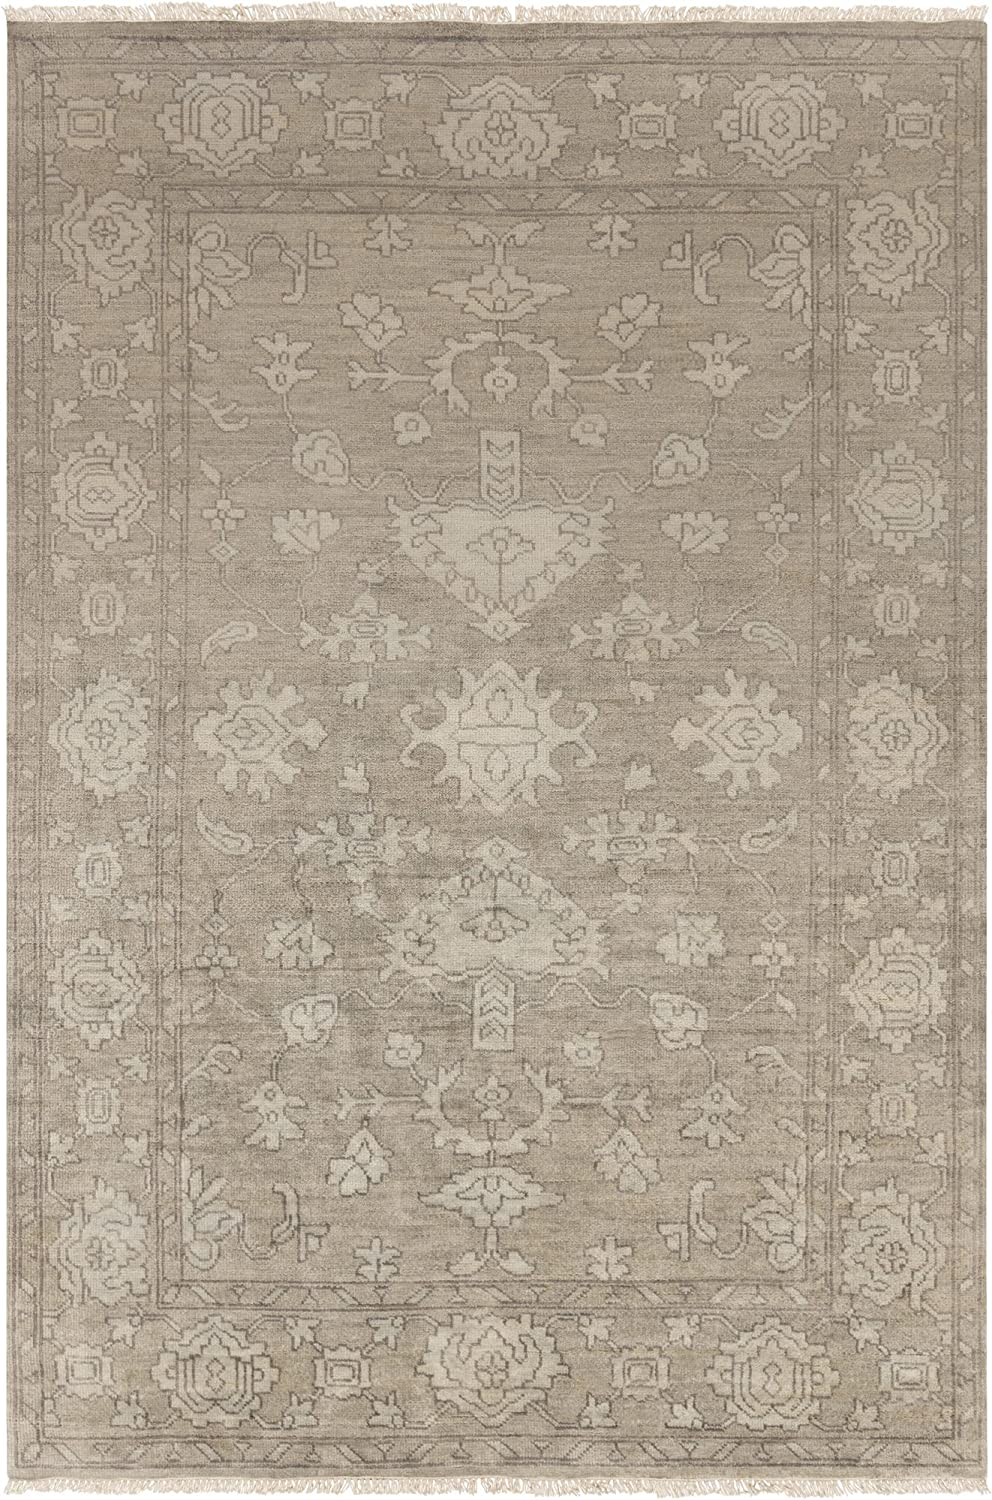 B00LK04780 Surya Hand Knotted Casual Accent Rug, 3-Feet 6-Inch by 5-Feet 6-Inch 91iPIsuDoHL